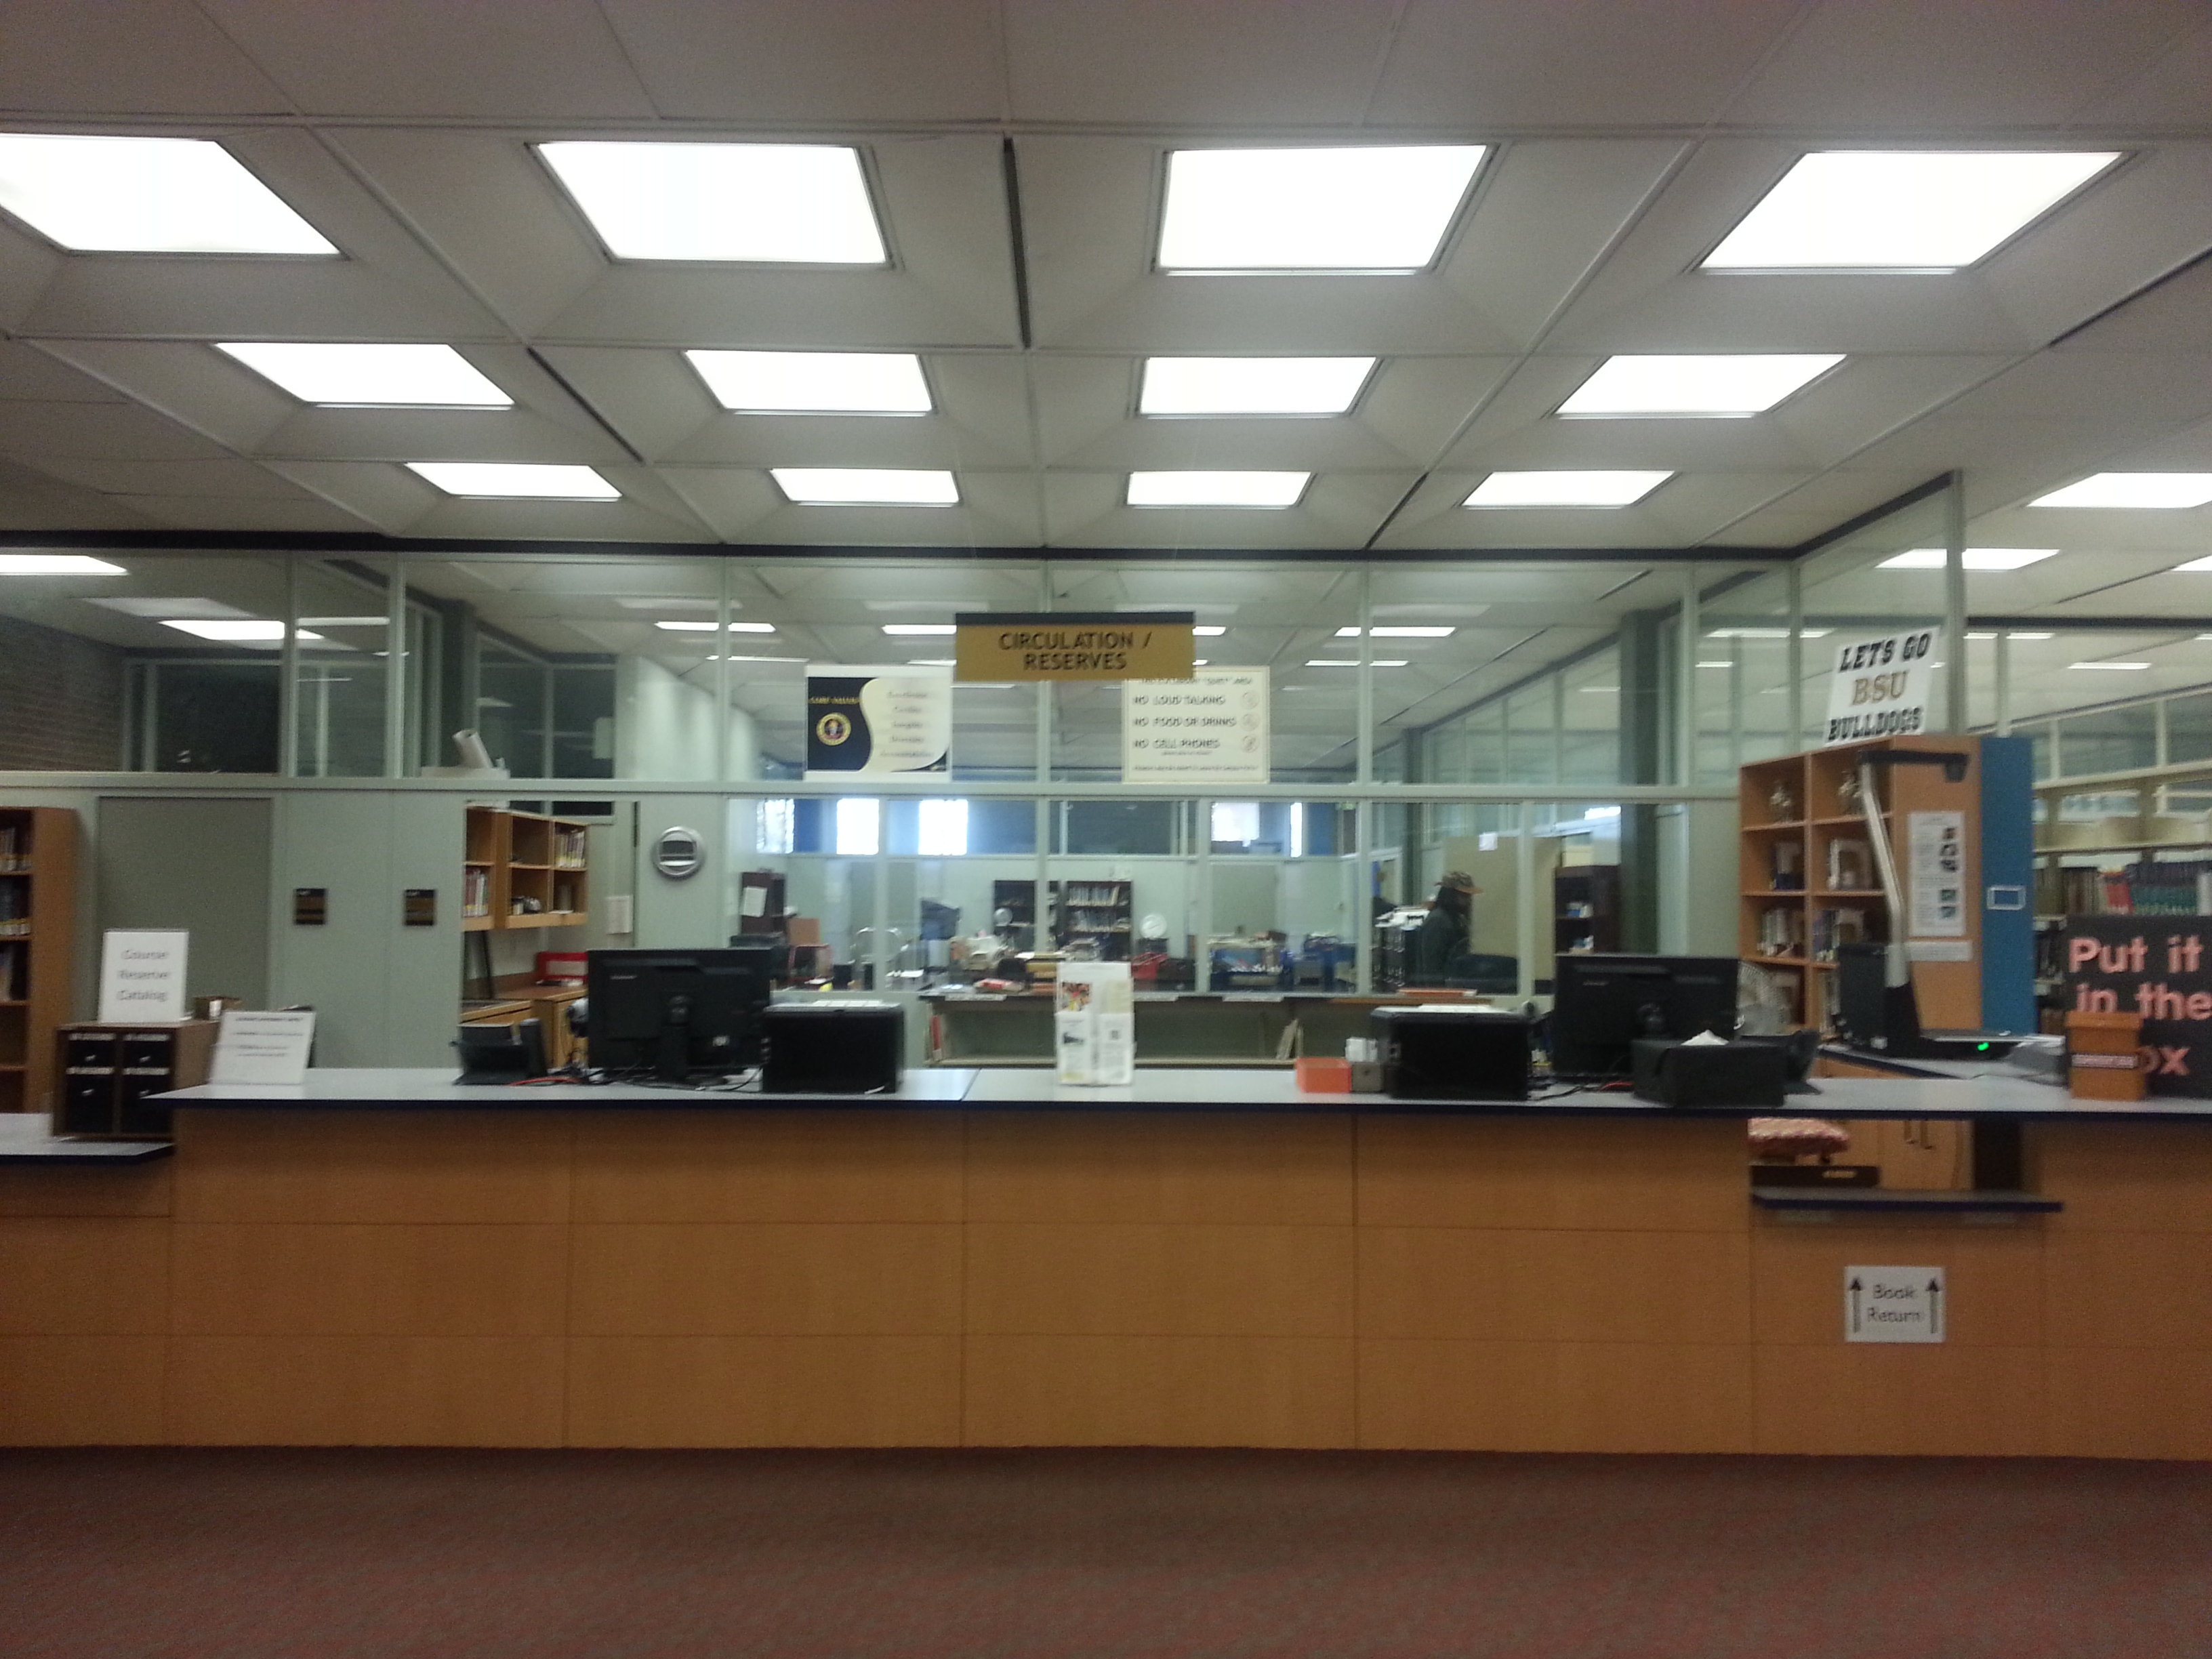 Image of the circulation desk in the Thurgood Marshall Library